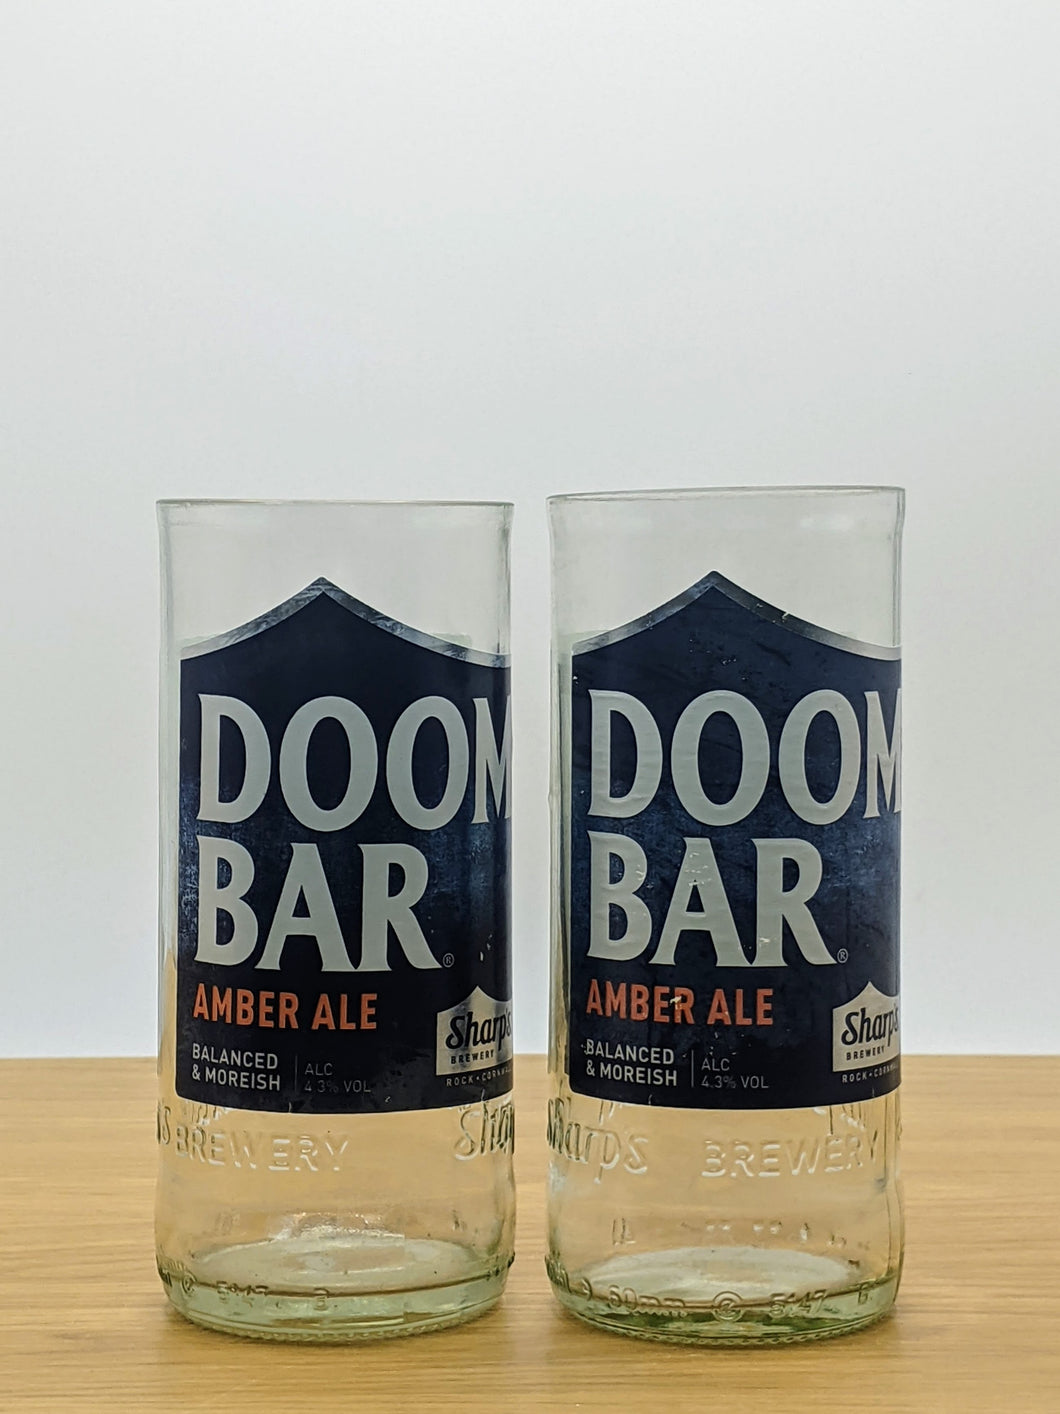 Doombar beer bottle tumblers